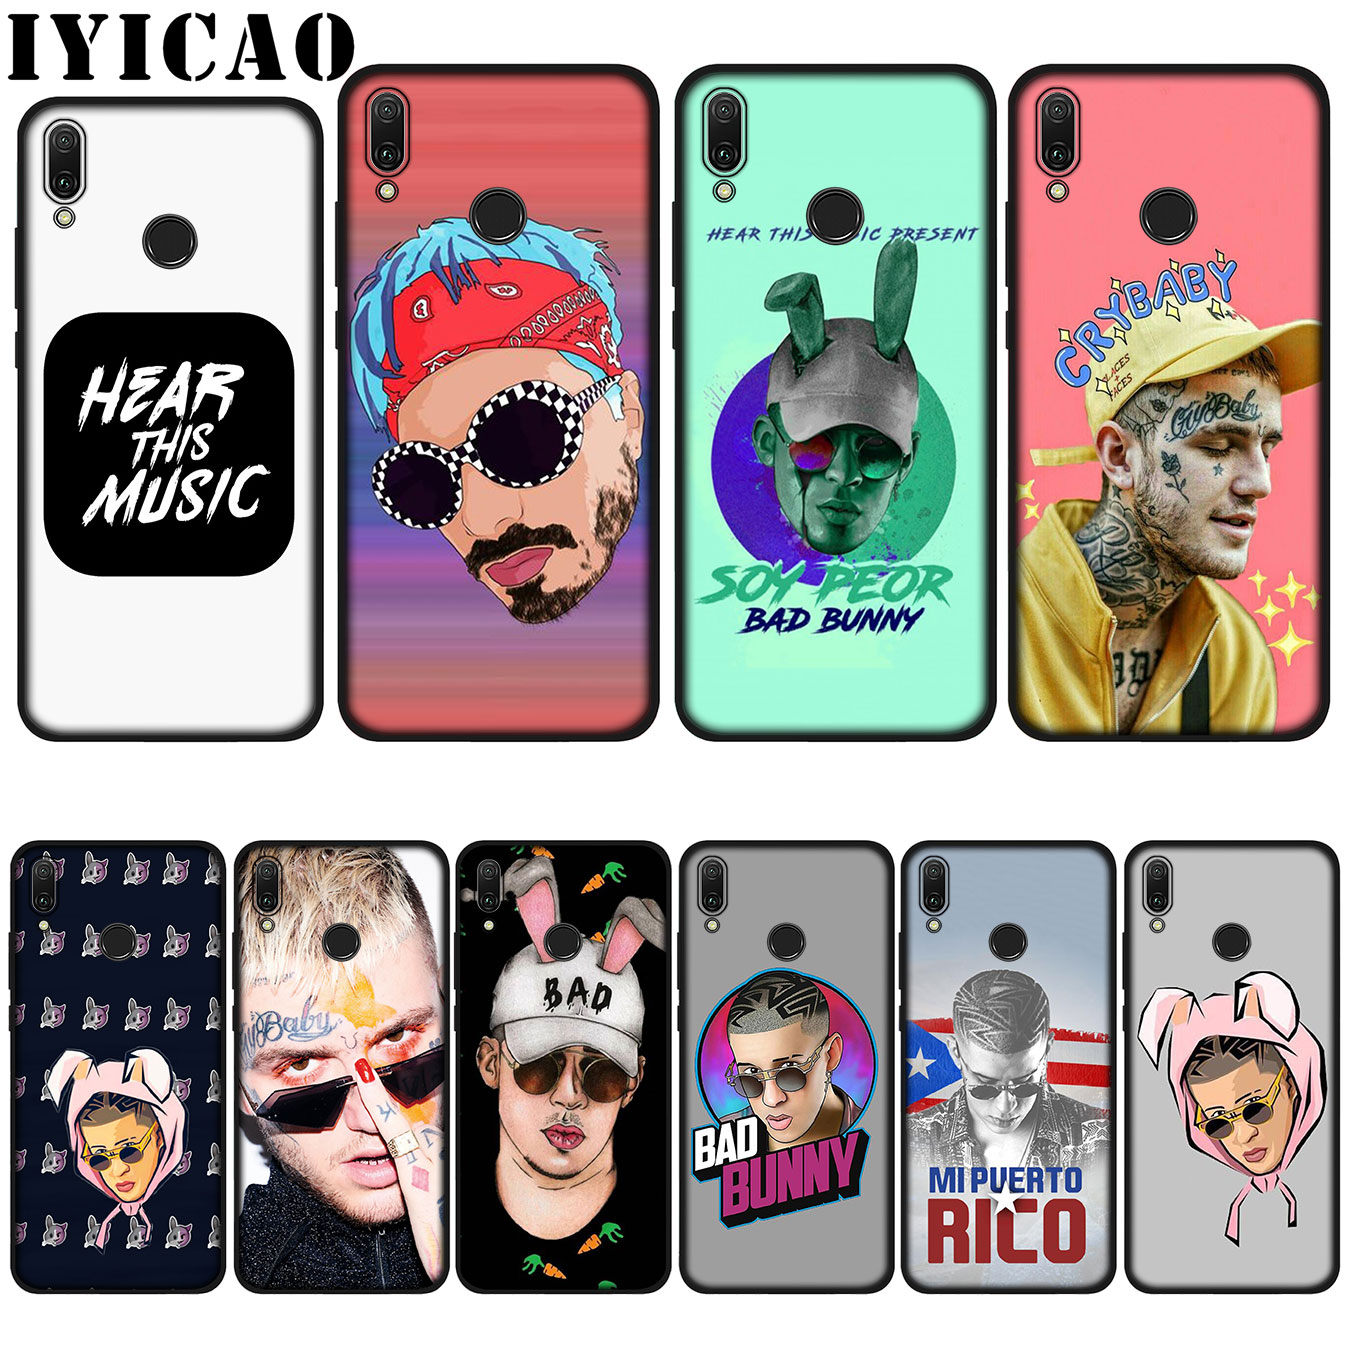 Fitted Cases Responsible Iyicao Bad Bunny Maluma Lil Peep Leading Silicone Soft Case For Huawei P20 Pro P10 P8 P9 Lite Mini 2017 P Smart 2019 Cover Low Price